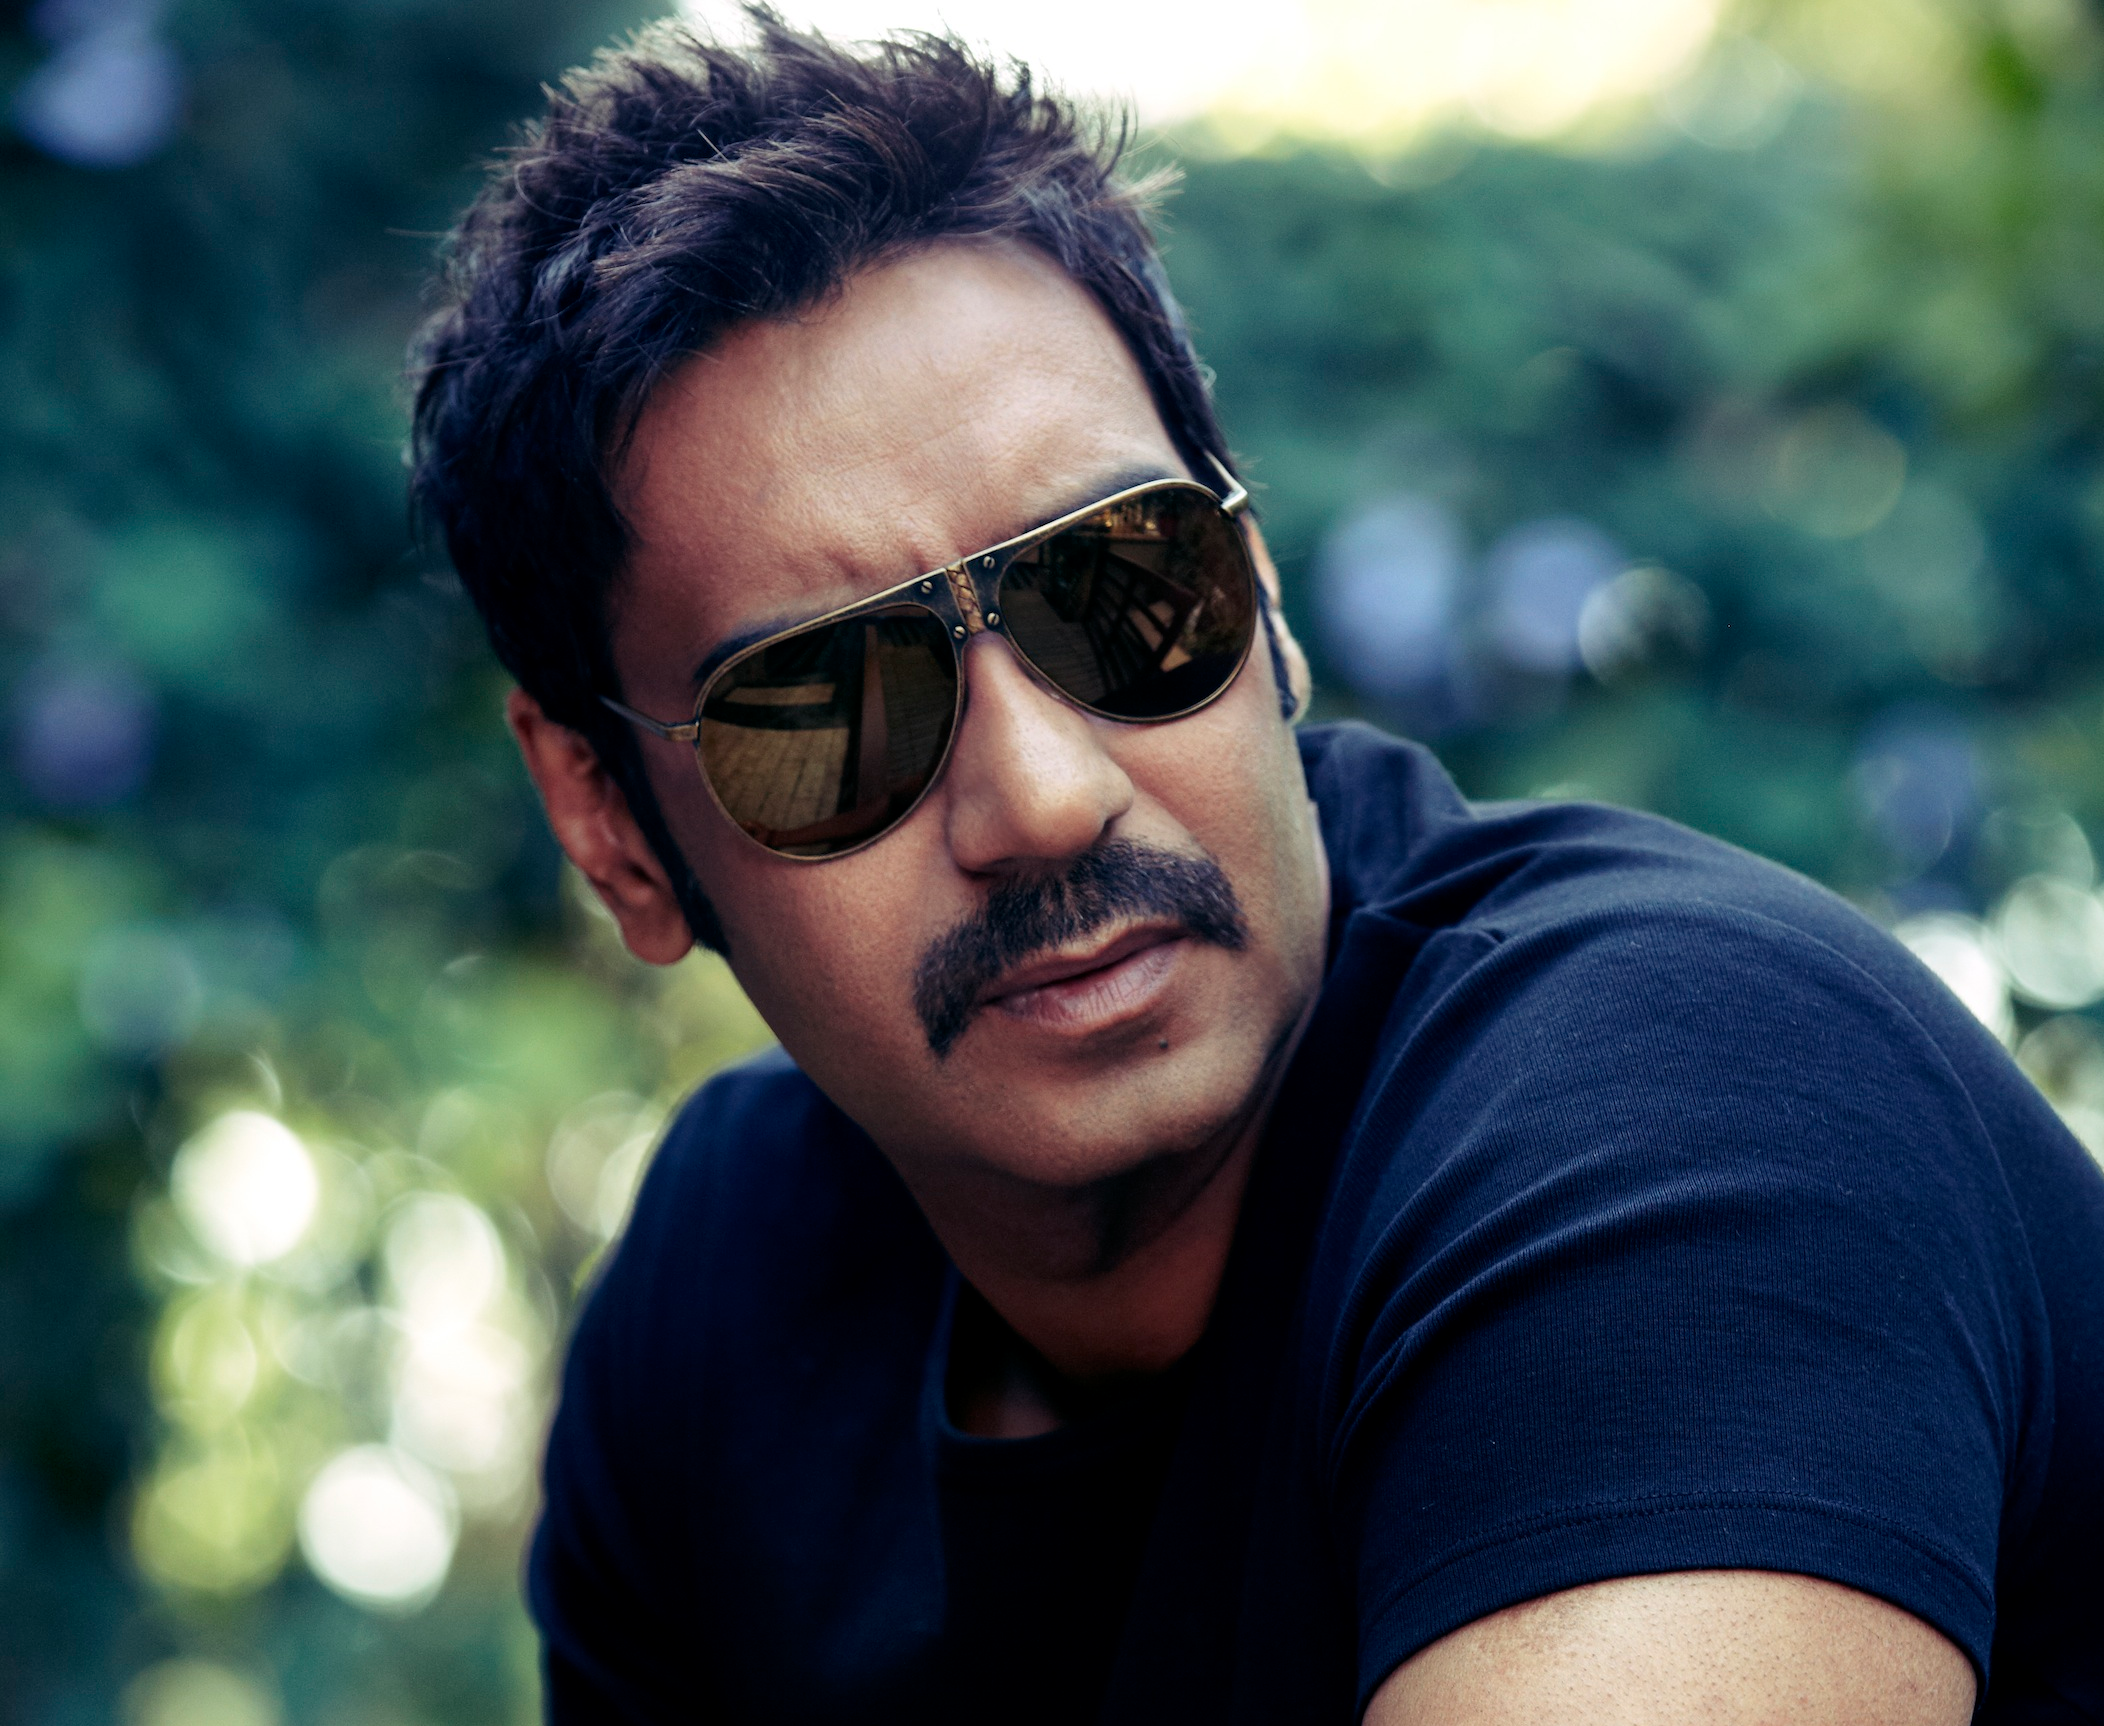 Ajay has no intention of entering politics